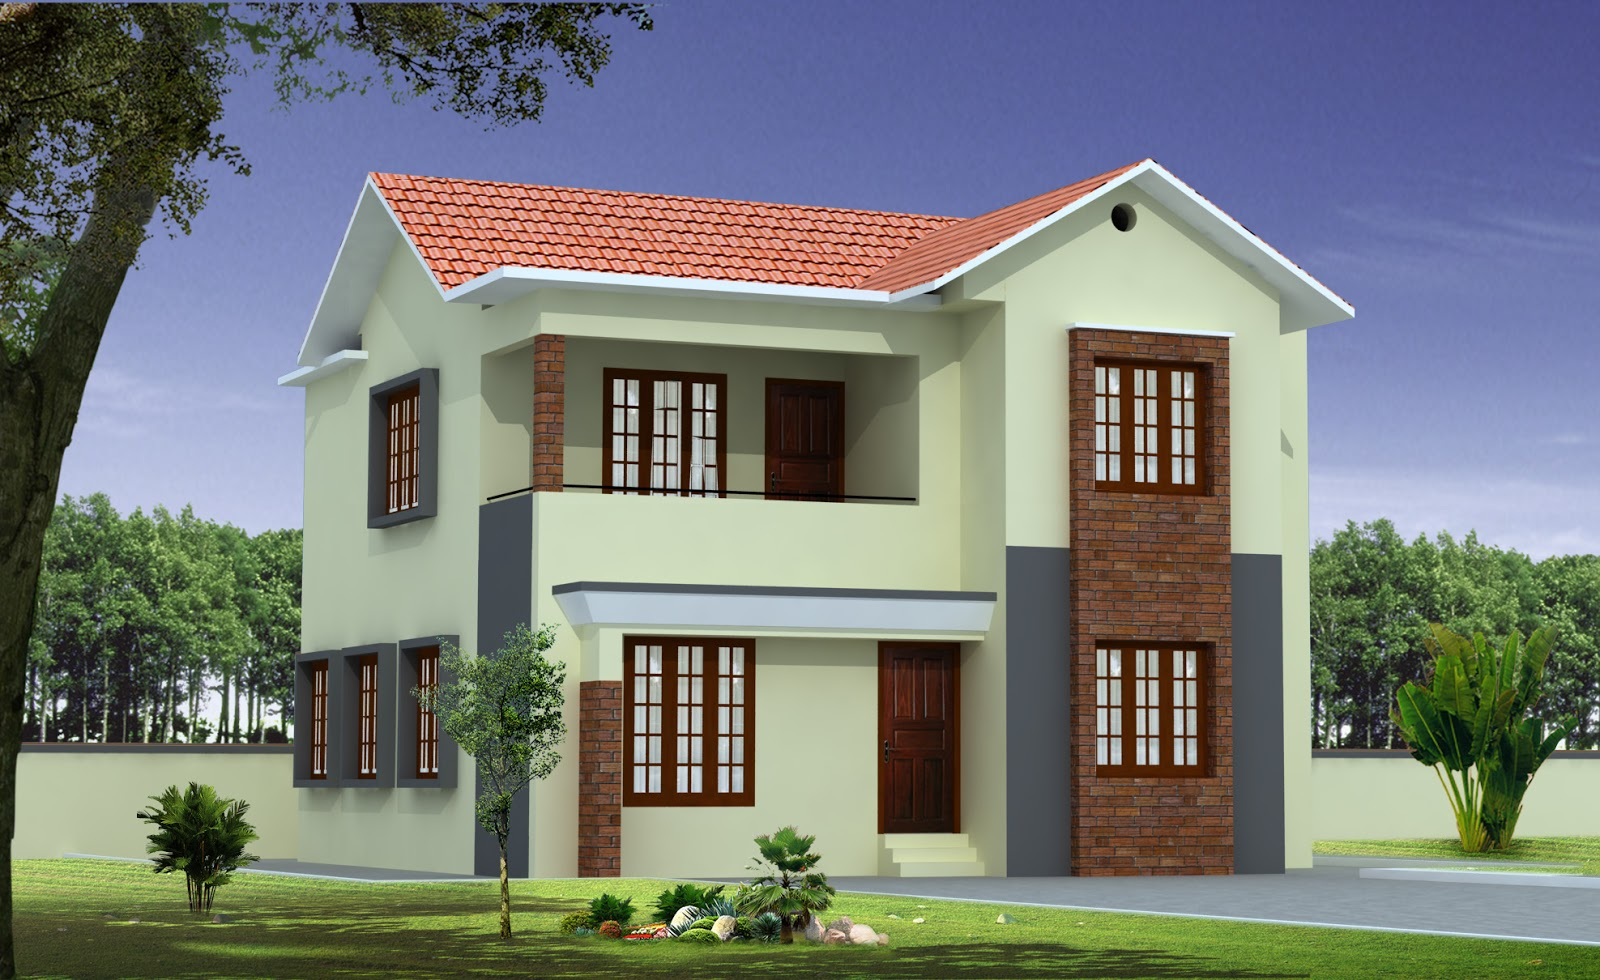 Build a building latest home designs for Latest home